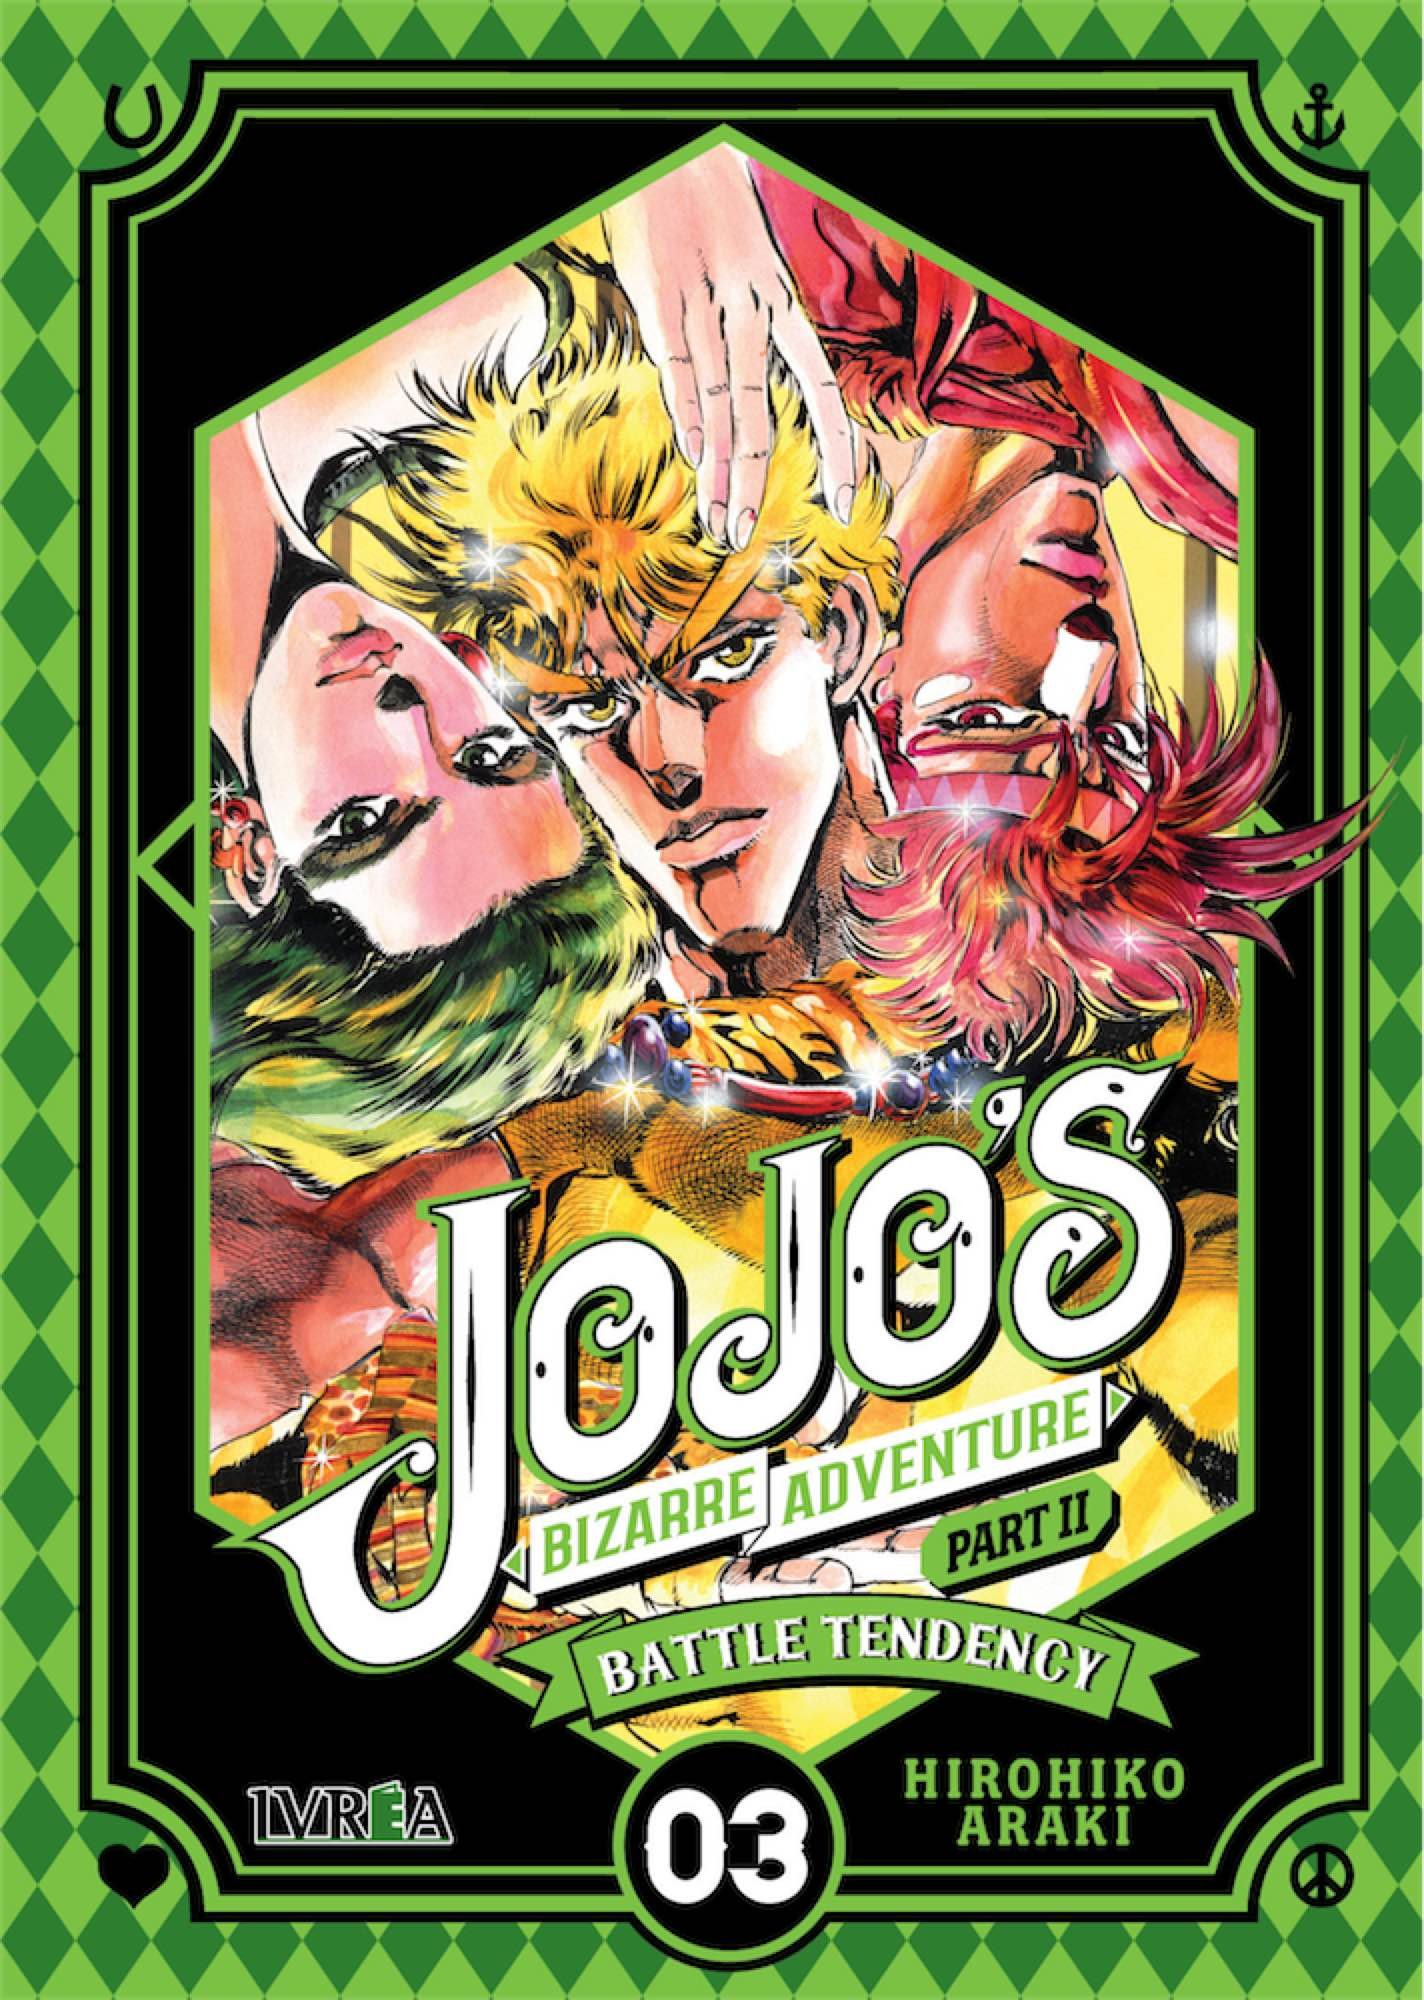 Jojos Bizarre Adventure Parte 1: Battle Tendency 3: 6: Amazon.es: Hirohiko Araki, Pablo Tschopp: Libros